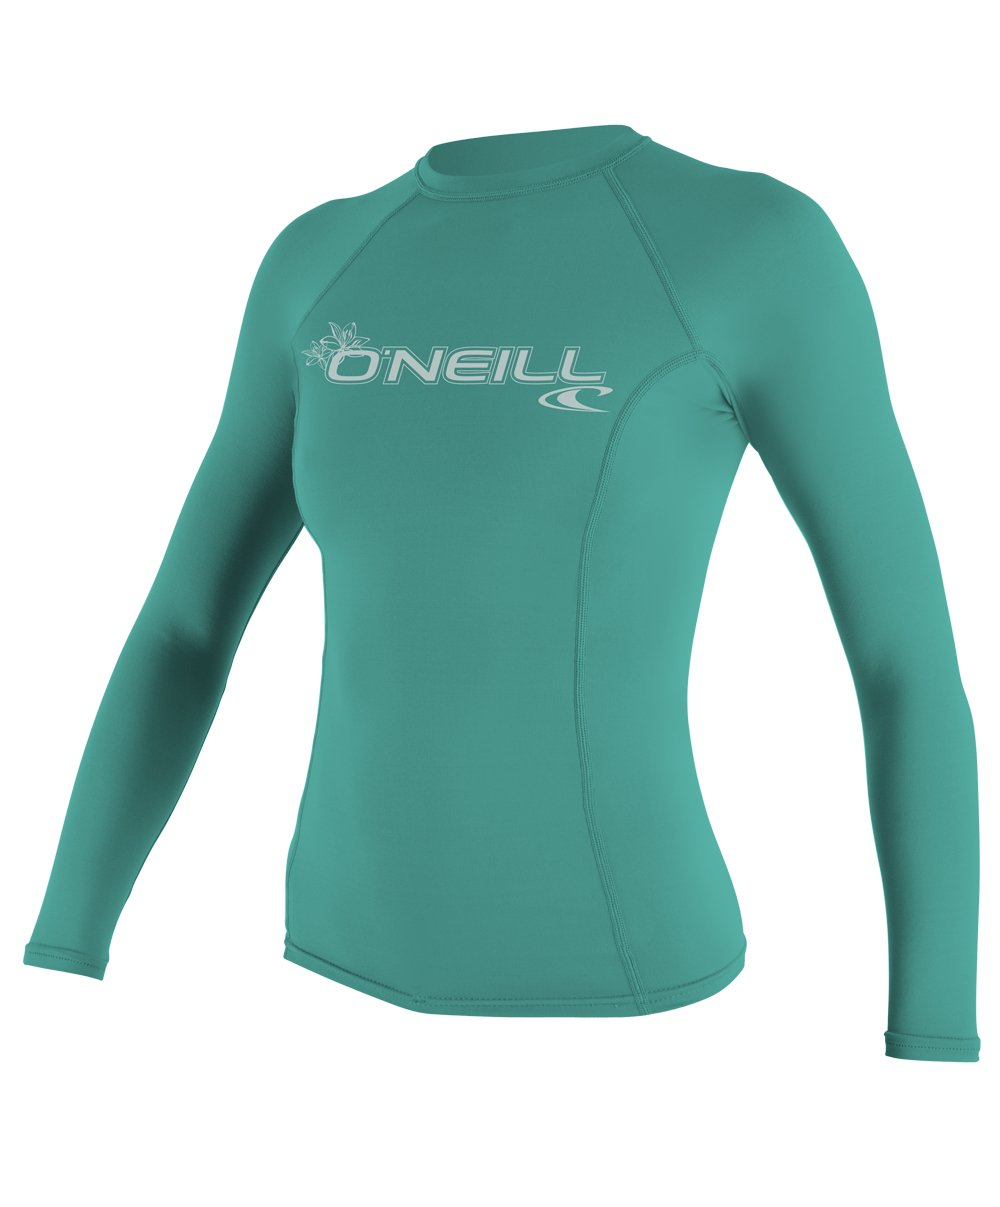 O'Neill Women's Basic Skins Upf 50+ Long Sleeve Rash Guard, Light Aqua, Medium